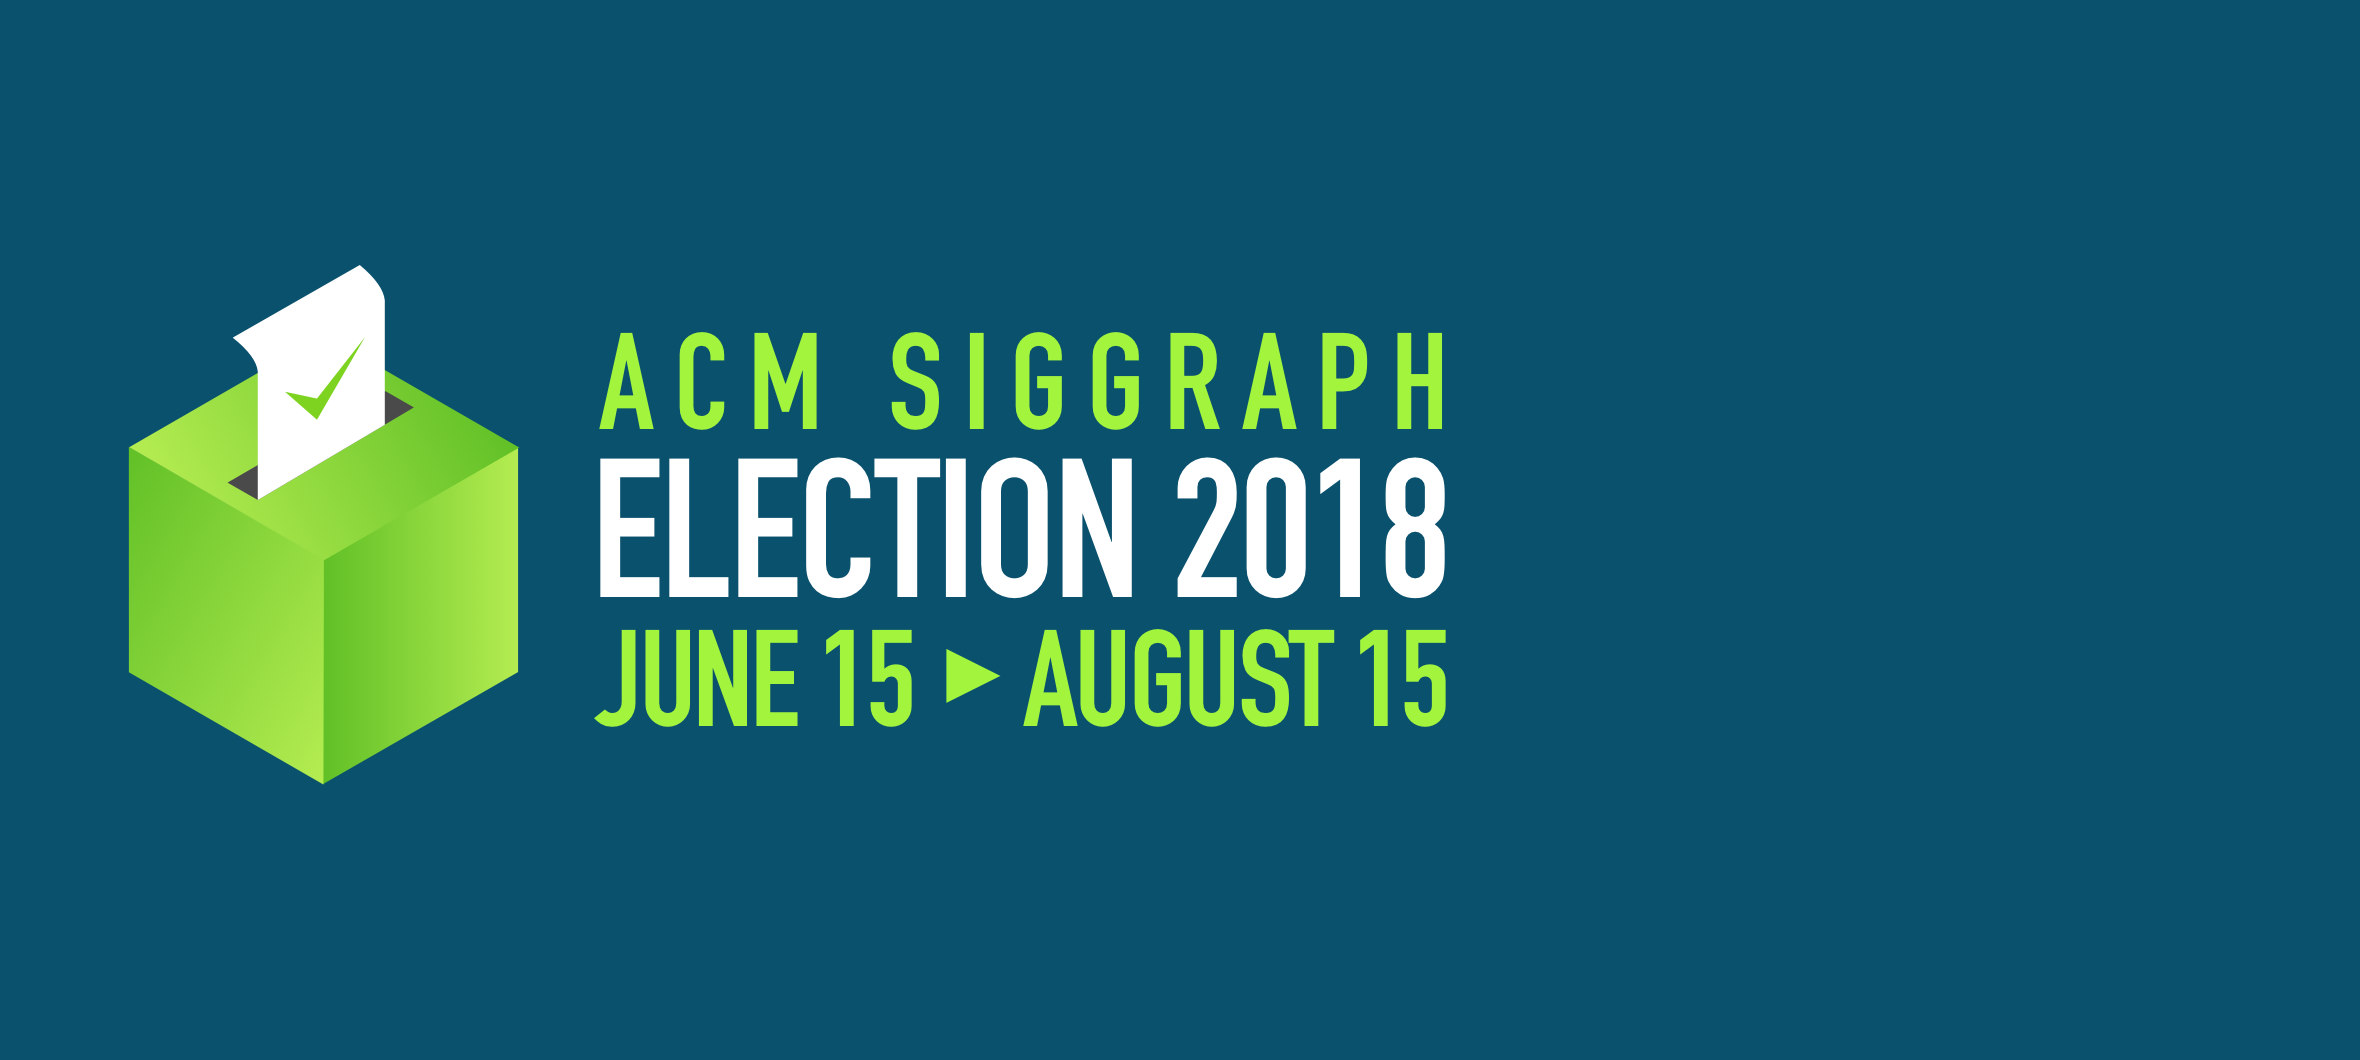 SIGGRAPH_ELECTION2018 (1).png